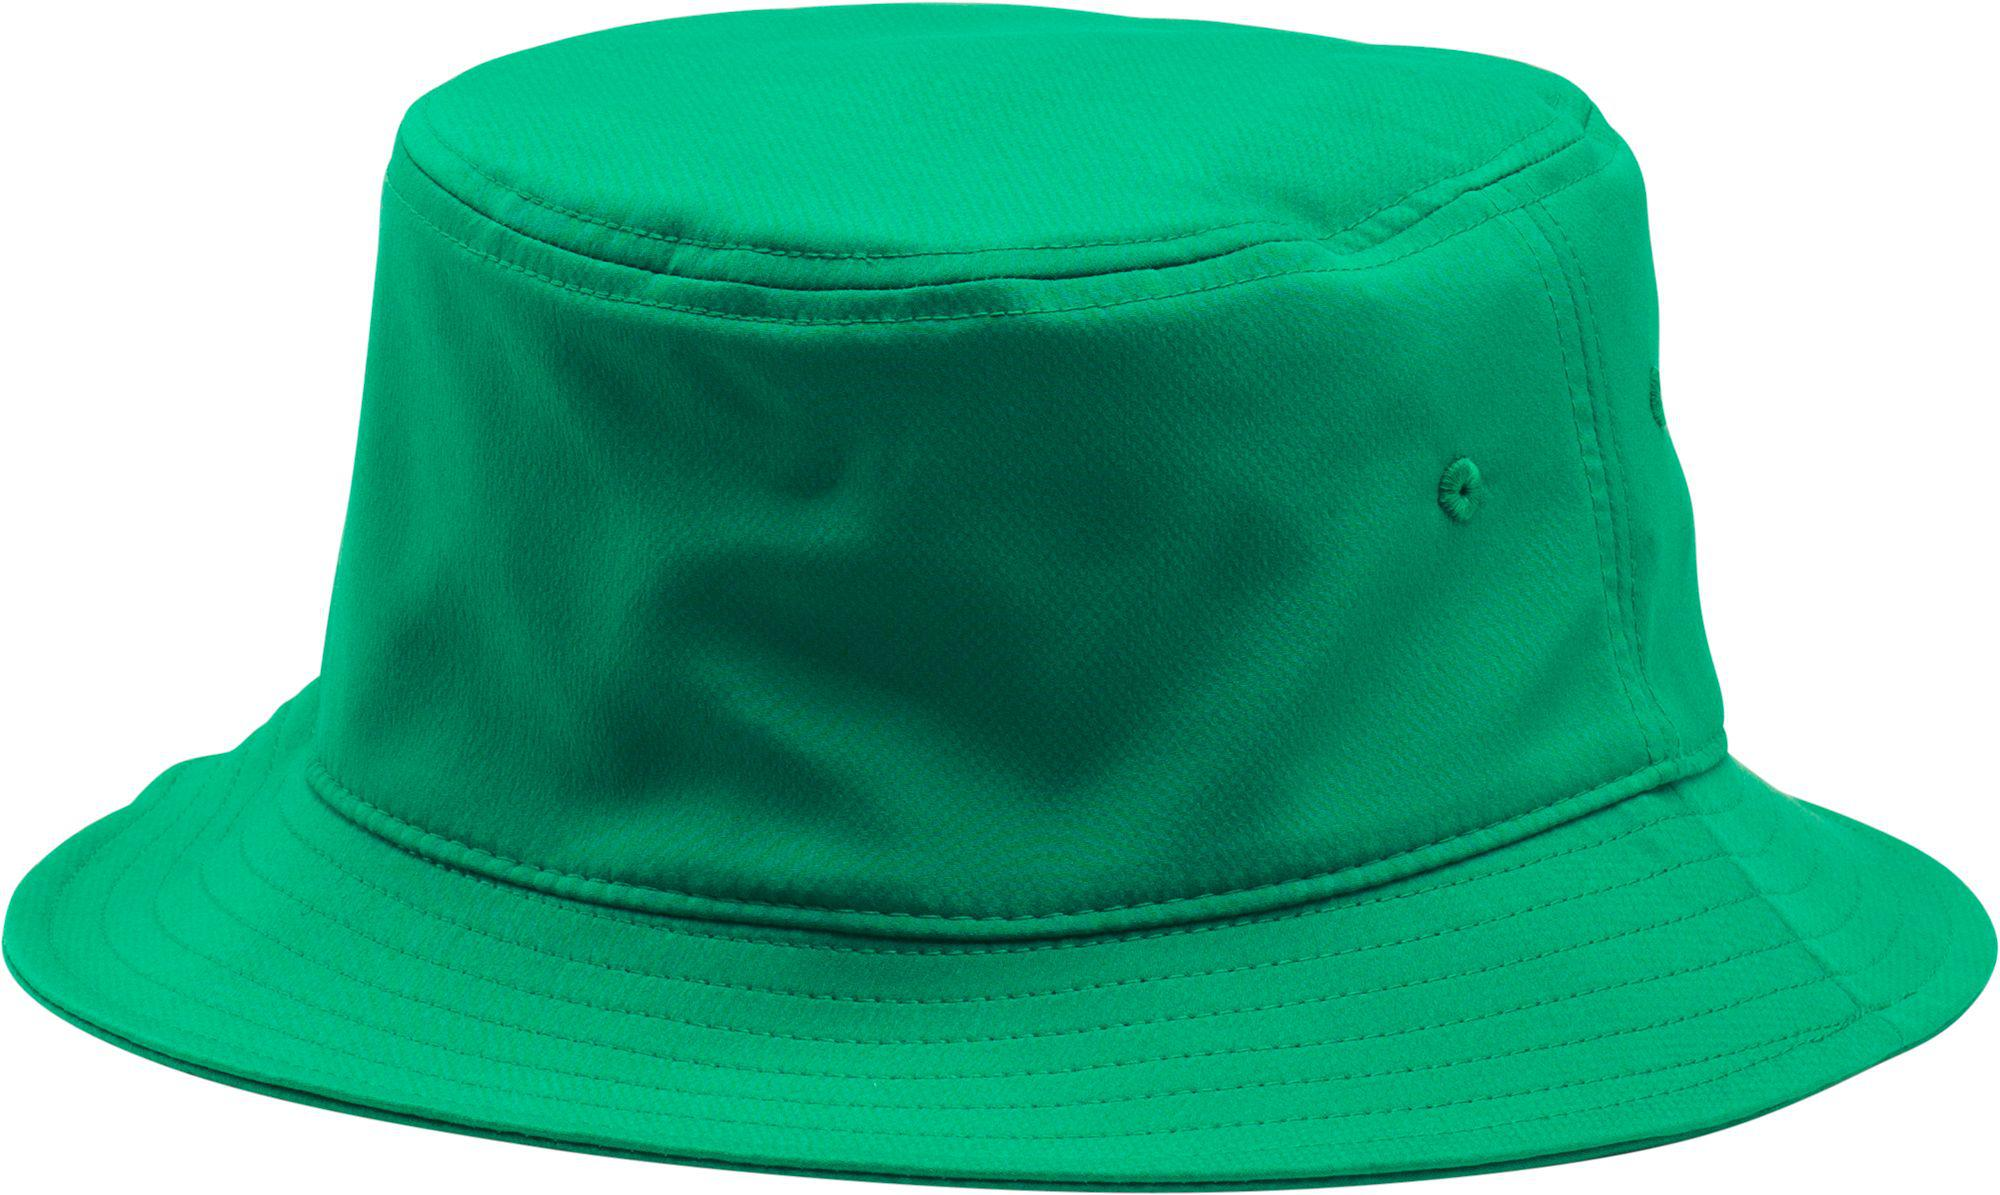 8e93a4df79b Lyst - Under Armour St. Patty s Day Bucket Hat in Green for Men